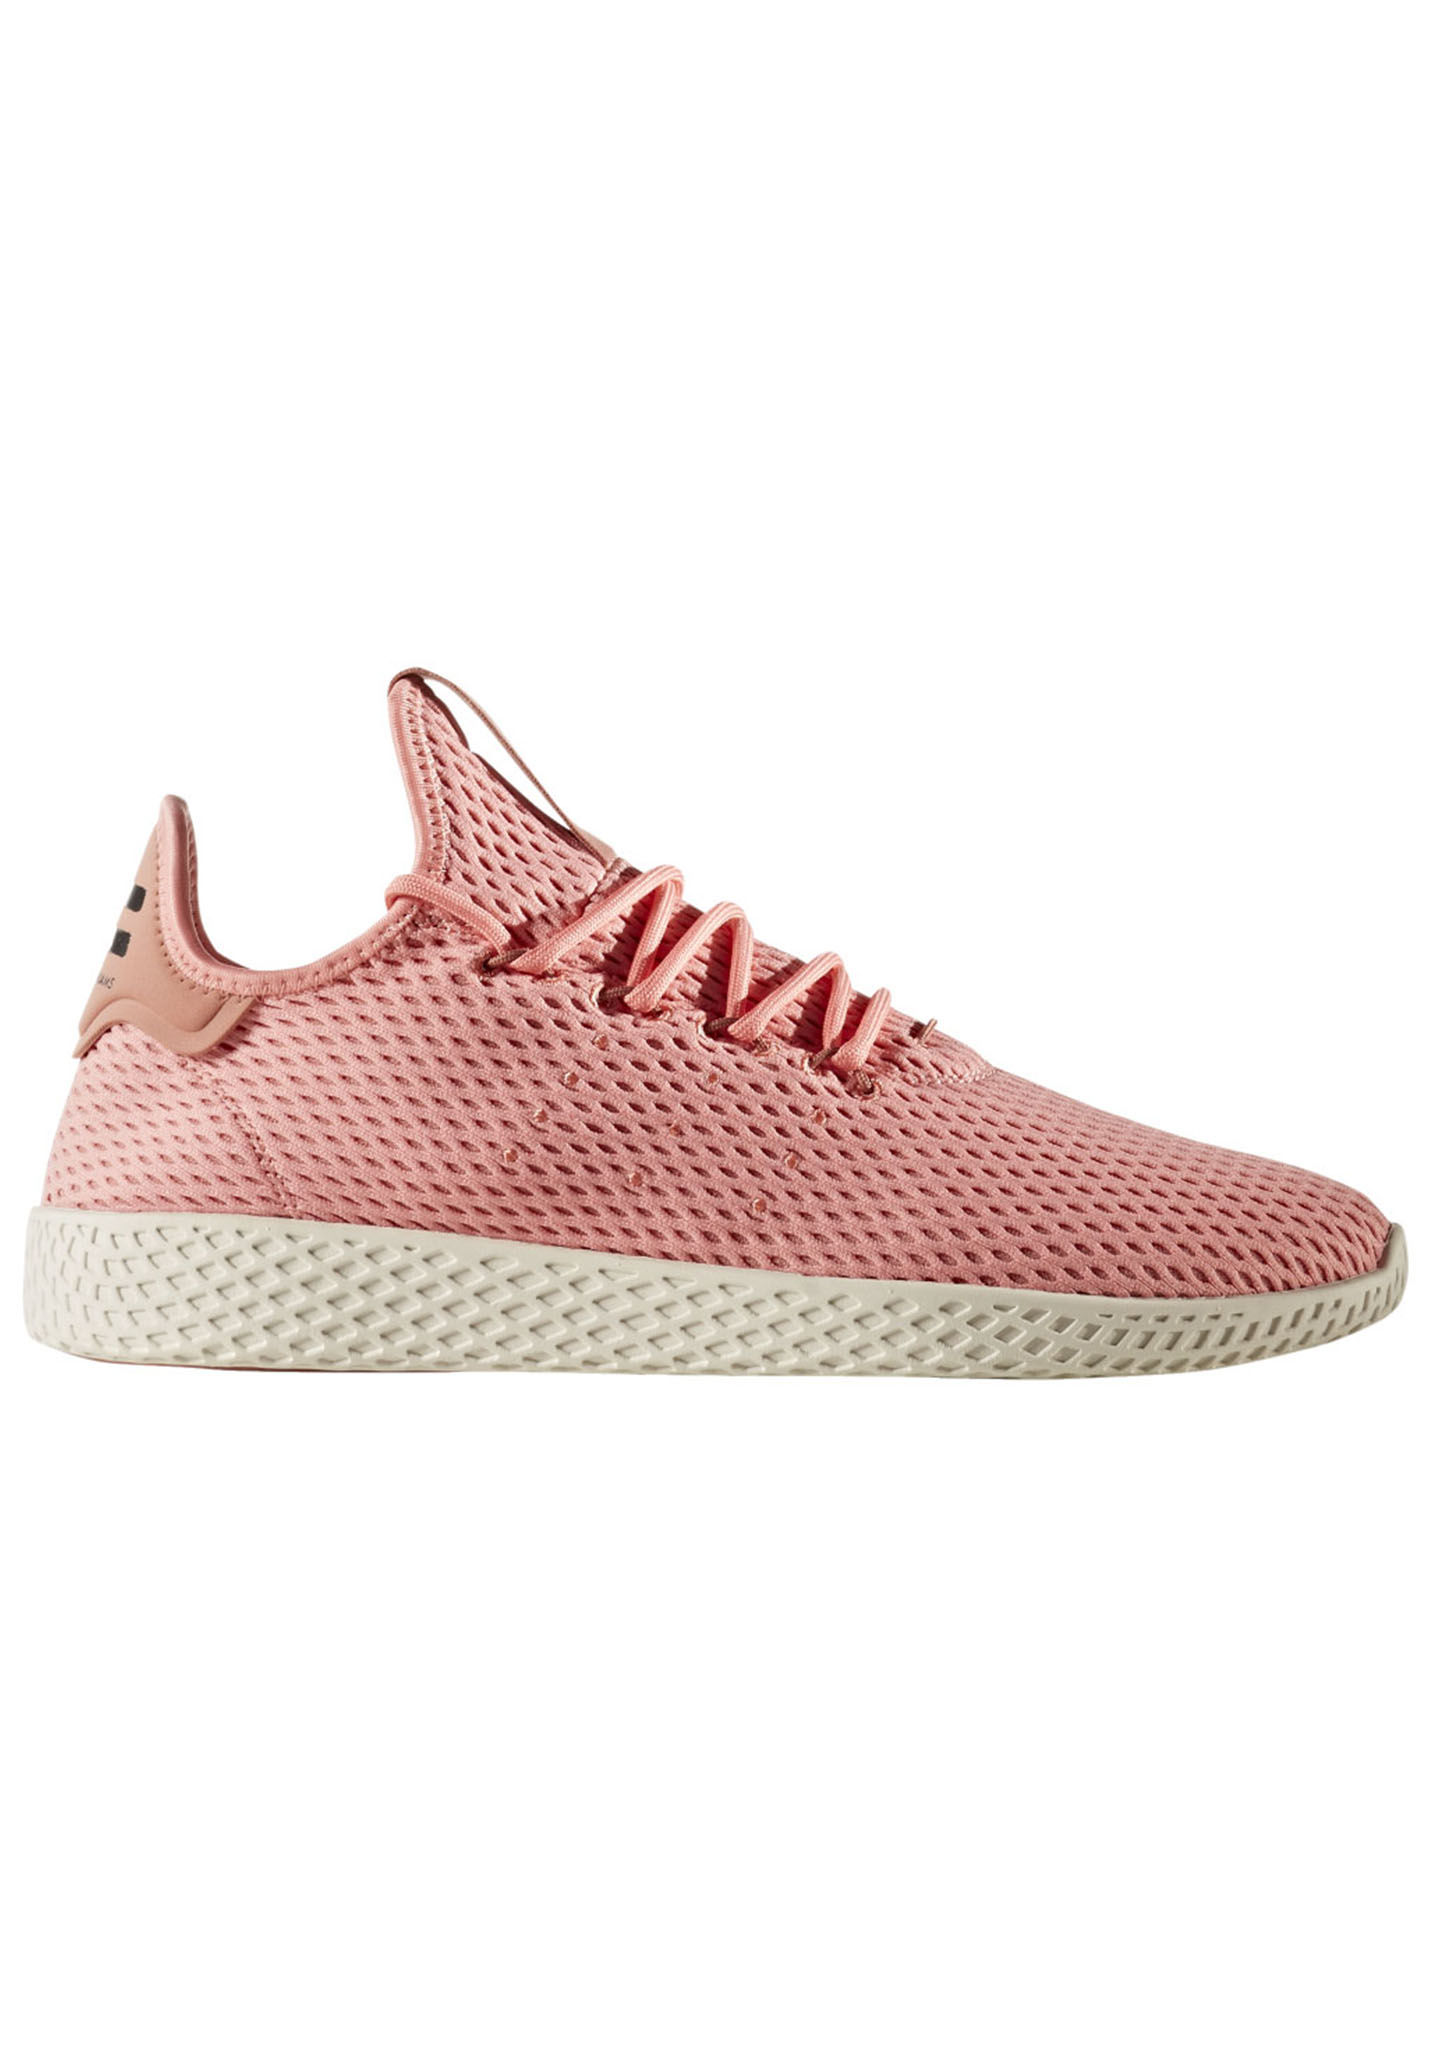 fb408740414b9 ADIDAS ORIGINALS Pharrell Williams Tennis HU - Sneakers - Pink - Planet  Sports